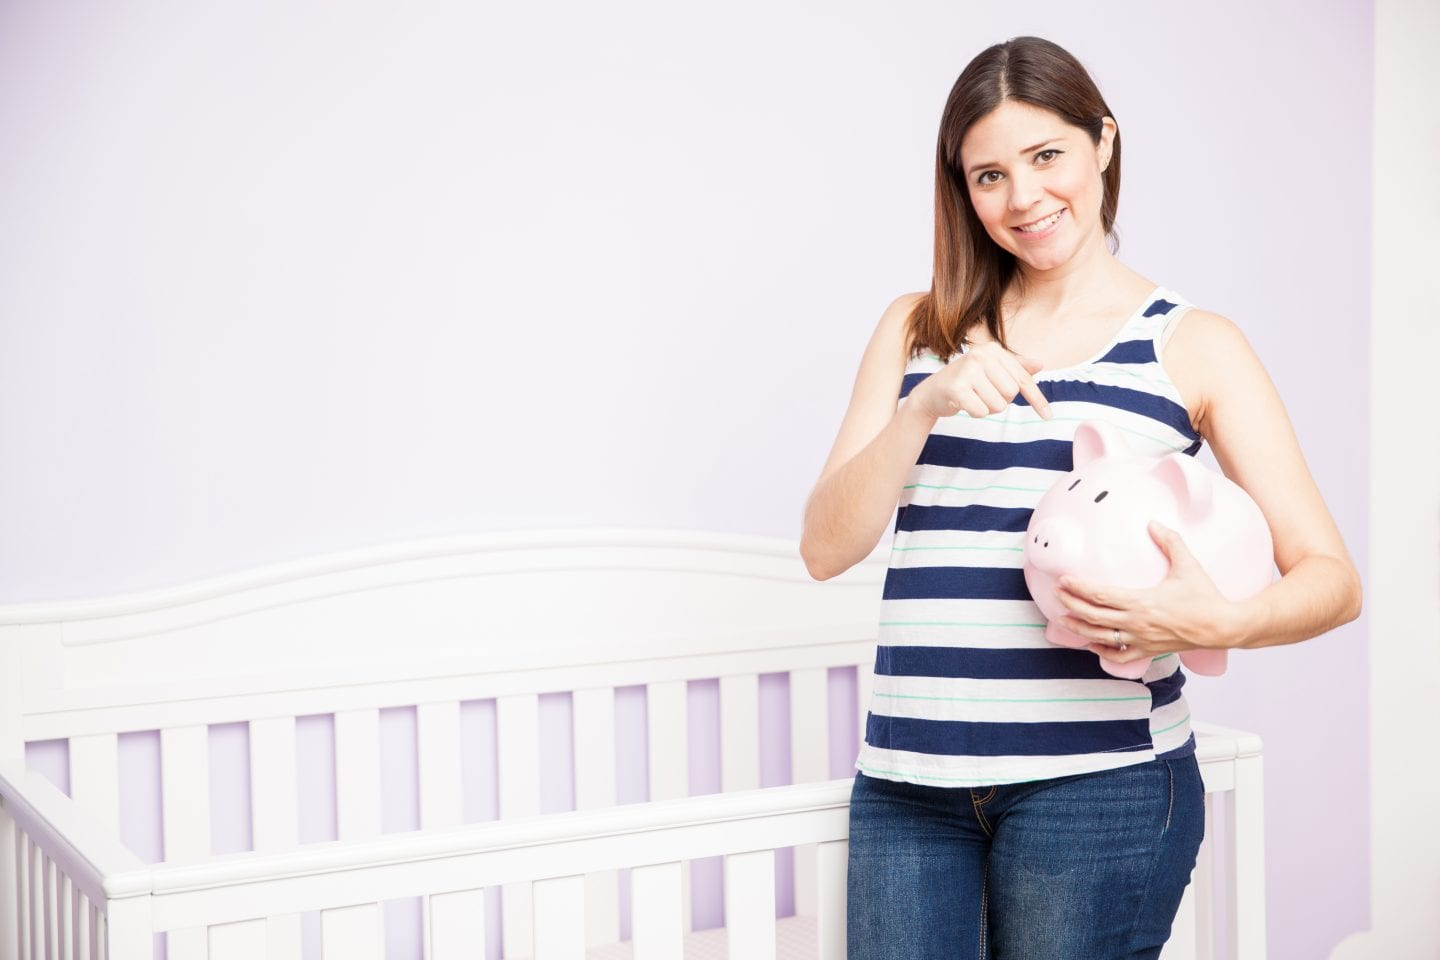 Becoming a Stay at home mom and living on one income as a stay at home mom.